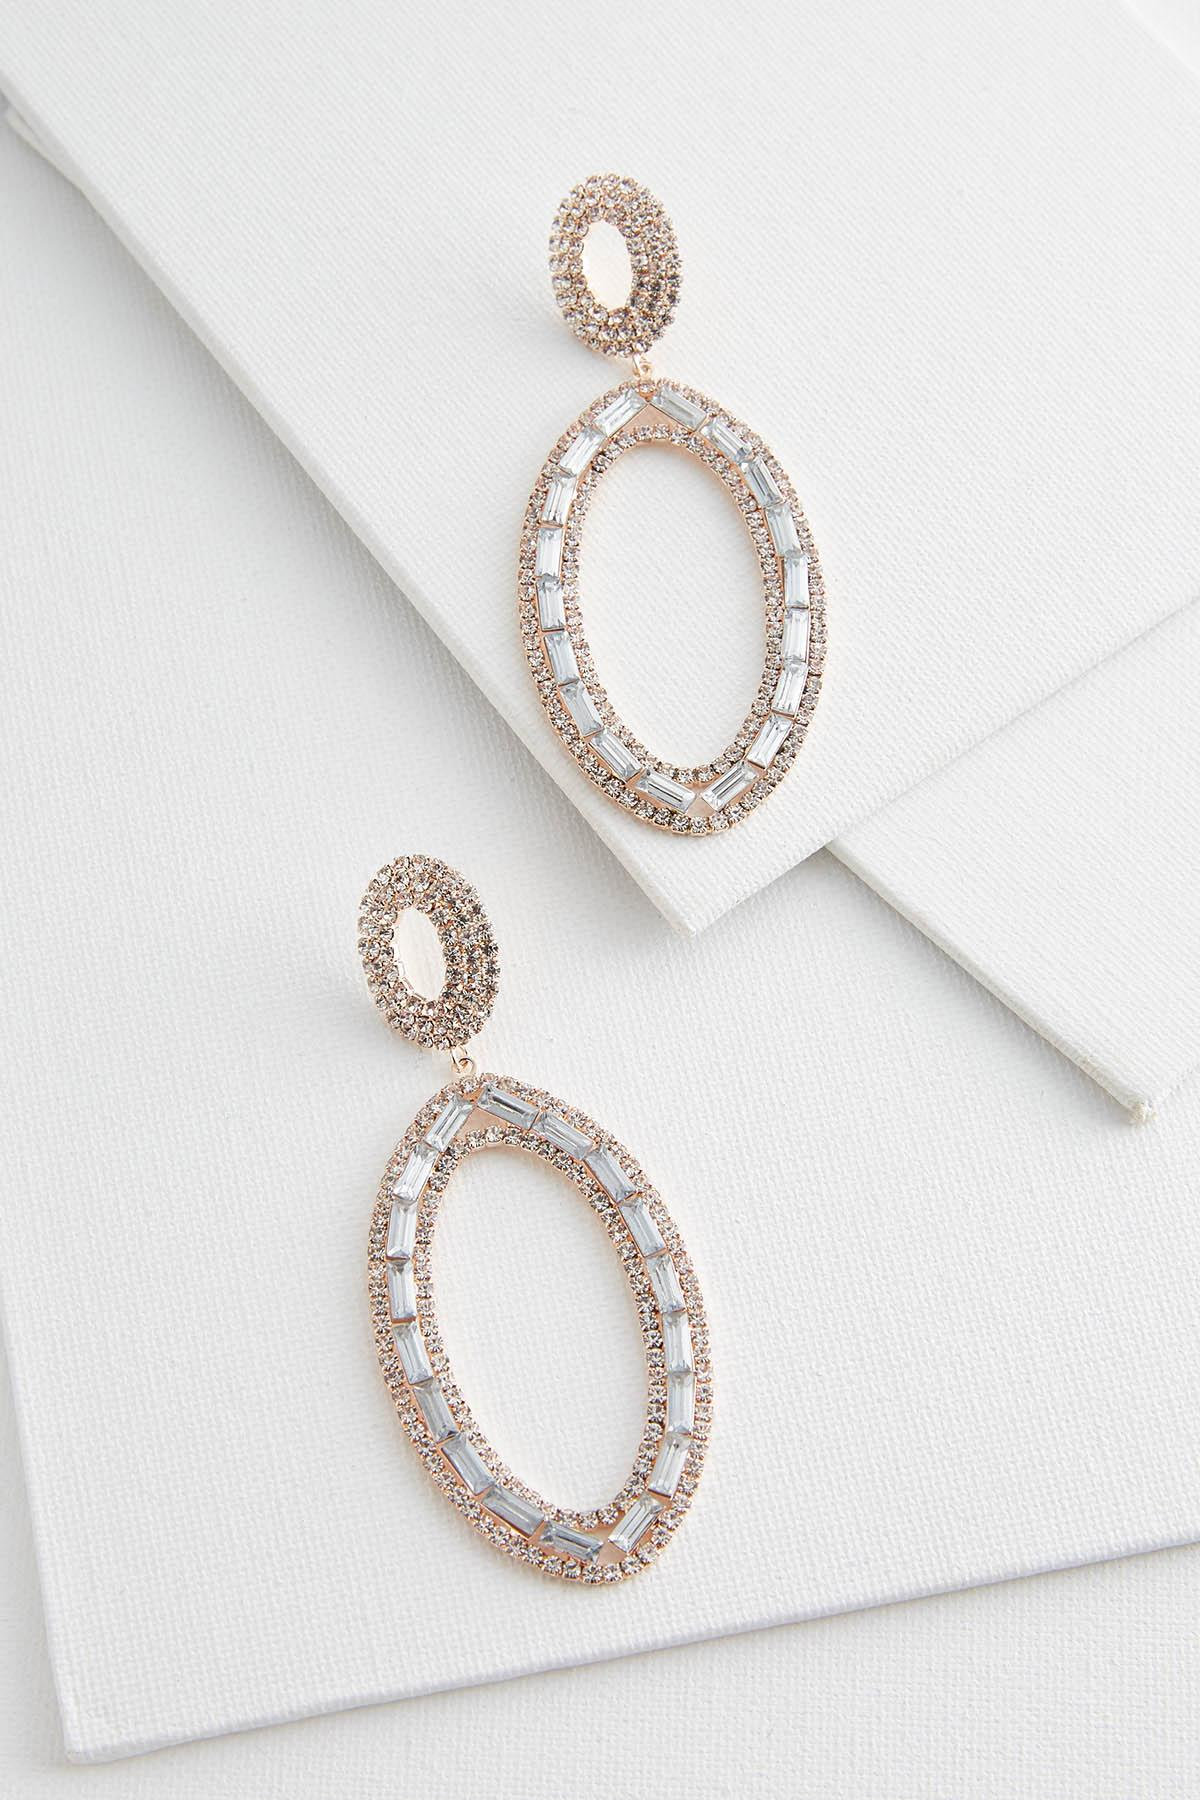 Oval Bling Earrings